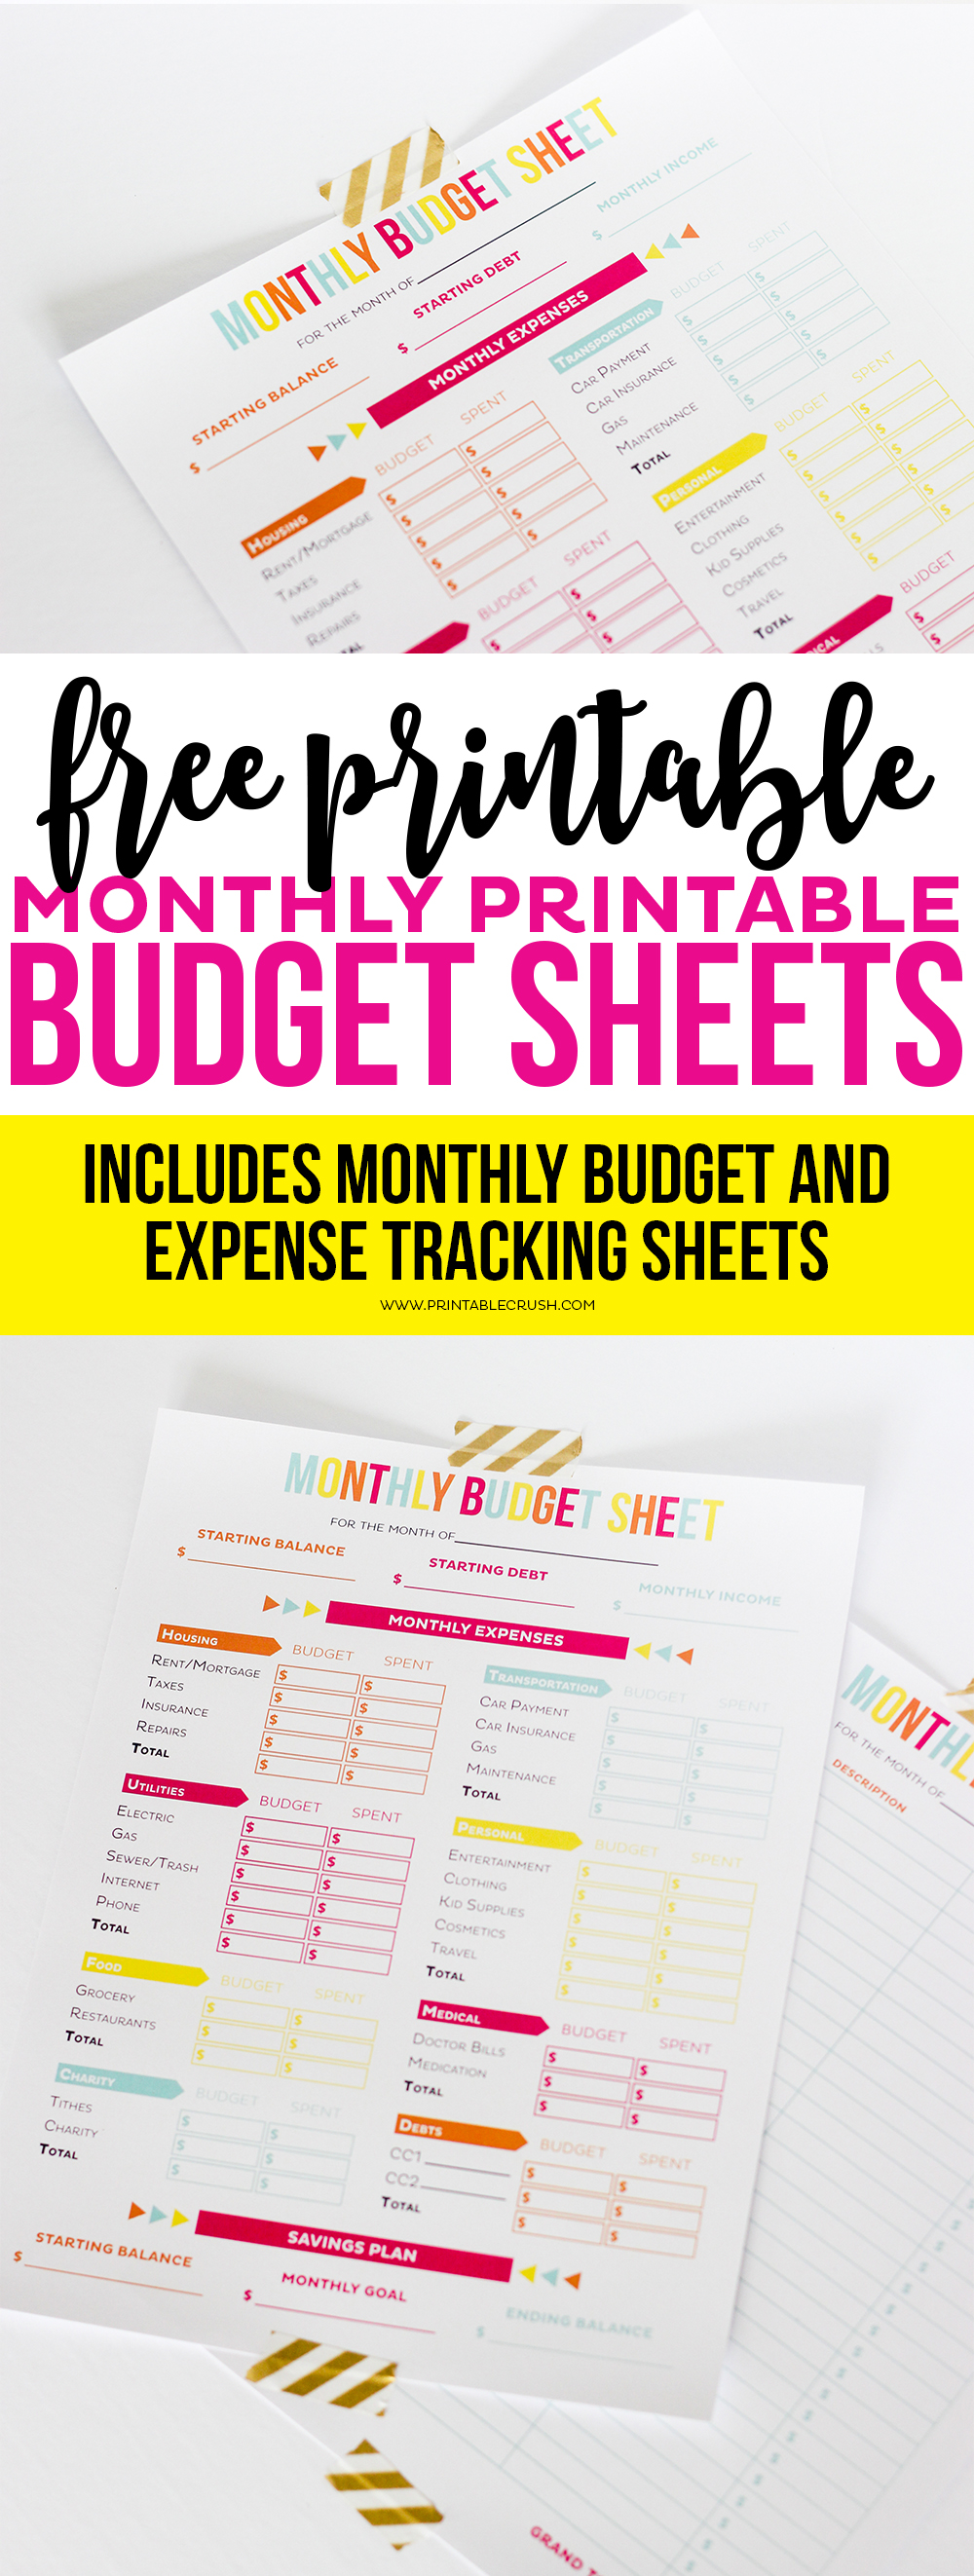 FREE Printable Budget Sheets Printable Crush – Free Printable Budget Worksheets